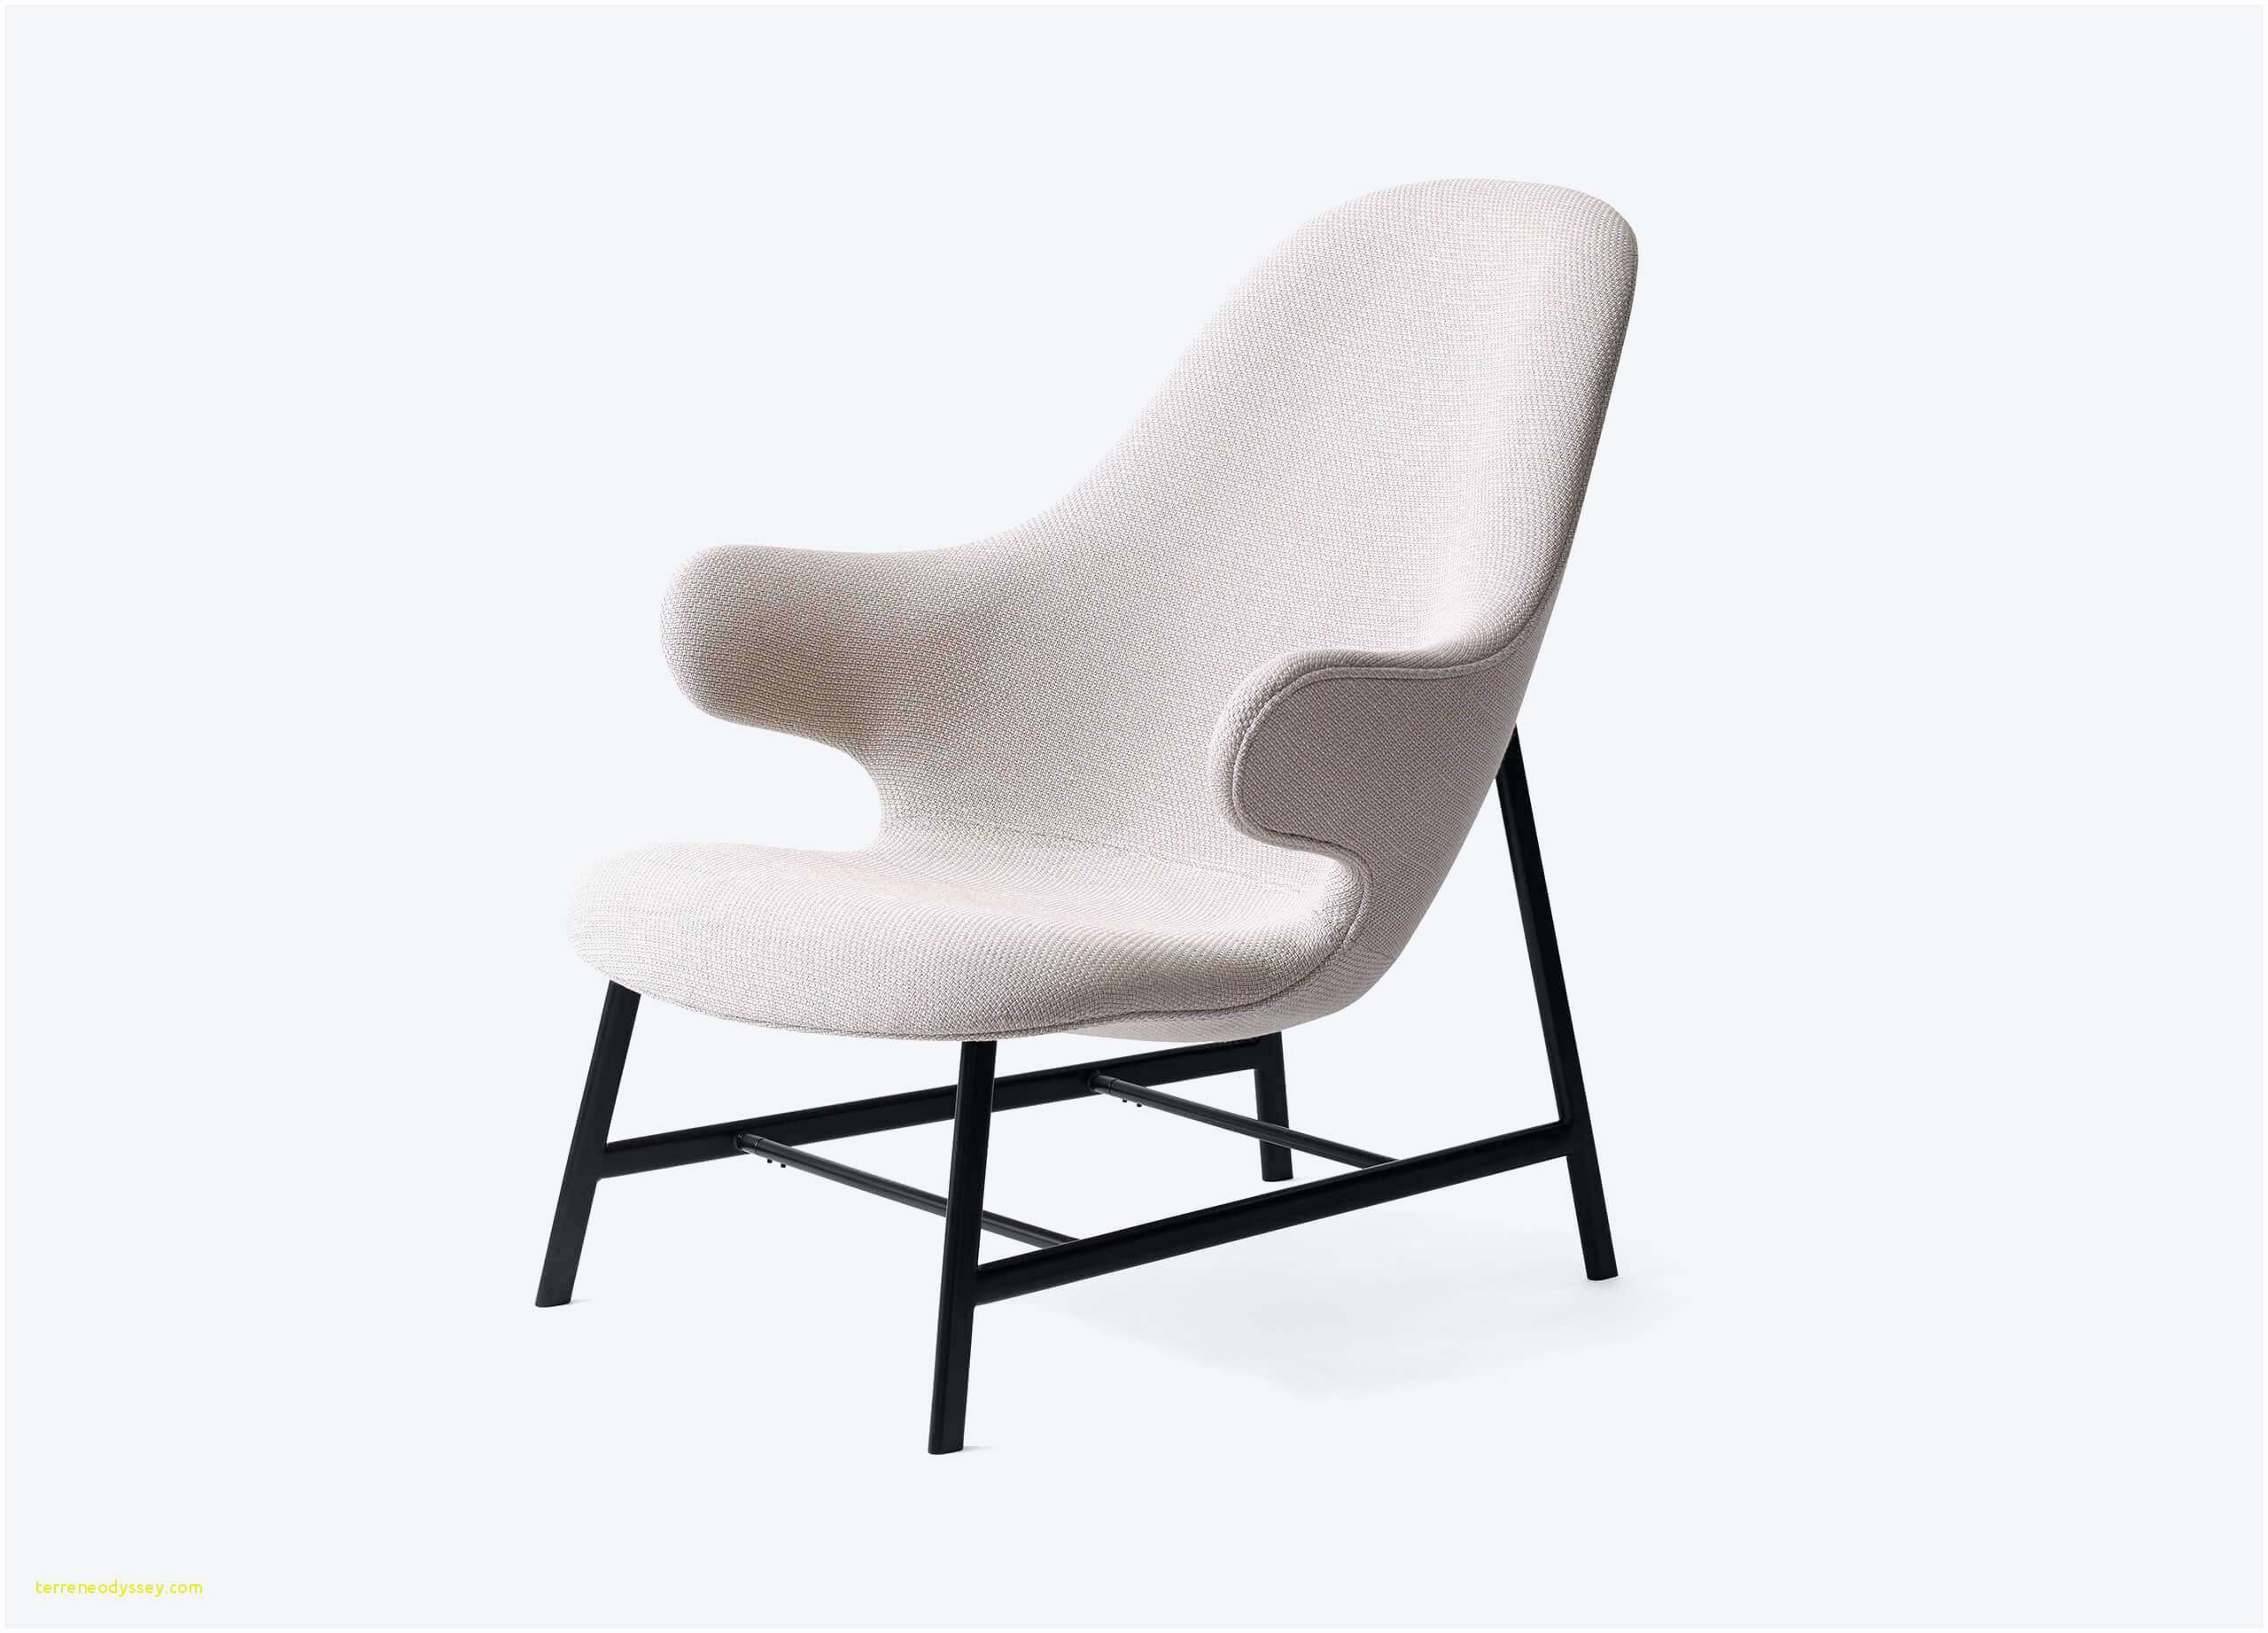 Table Et Chaise Pliante Luxe Charmant Chaise Fer forge Salle A Manger Luckytroll Of 27 Génial Table Et Chaise Pliante